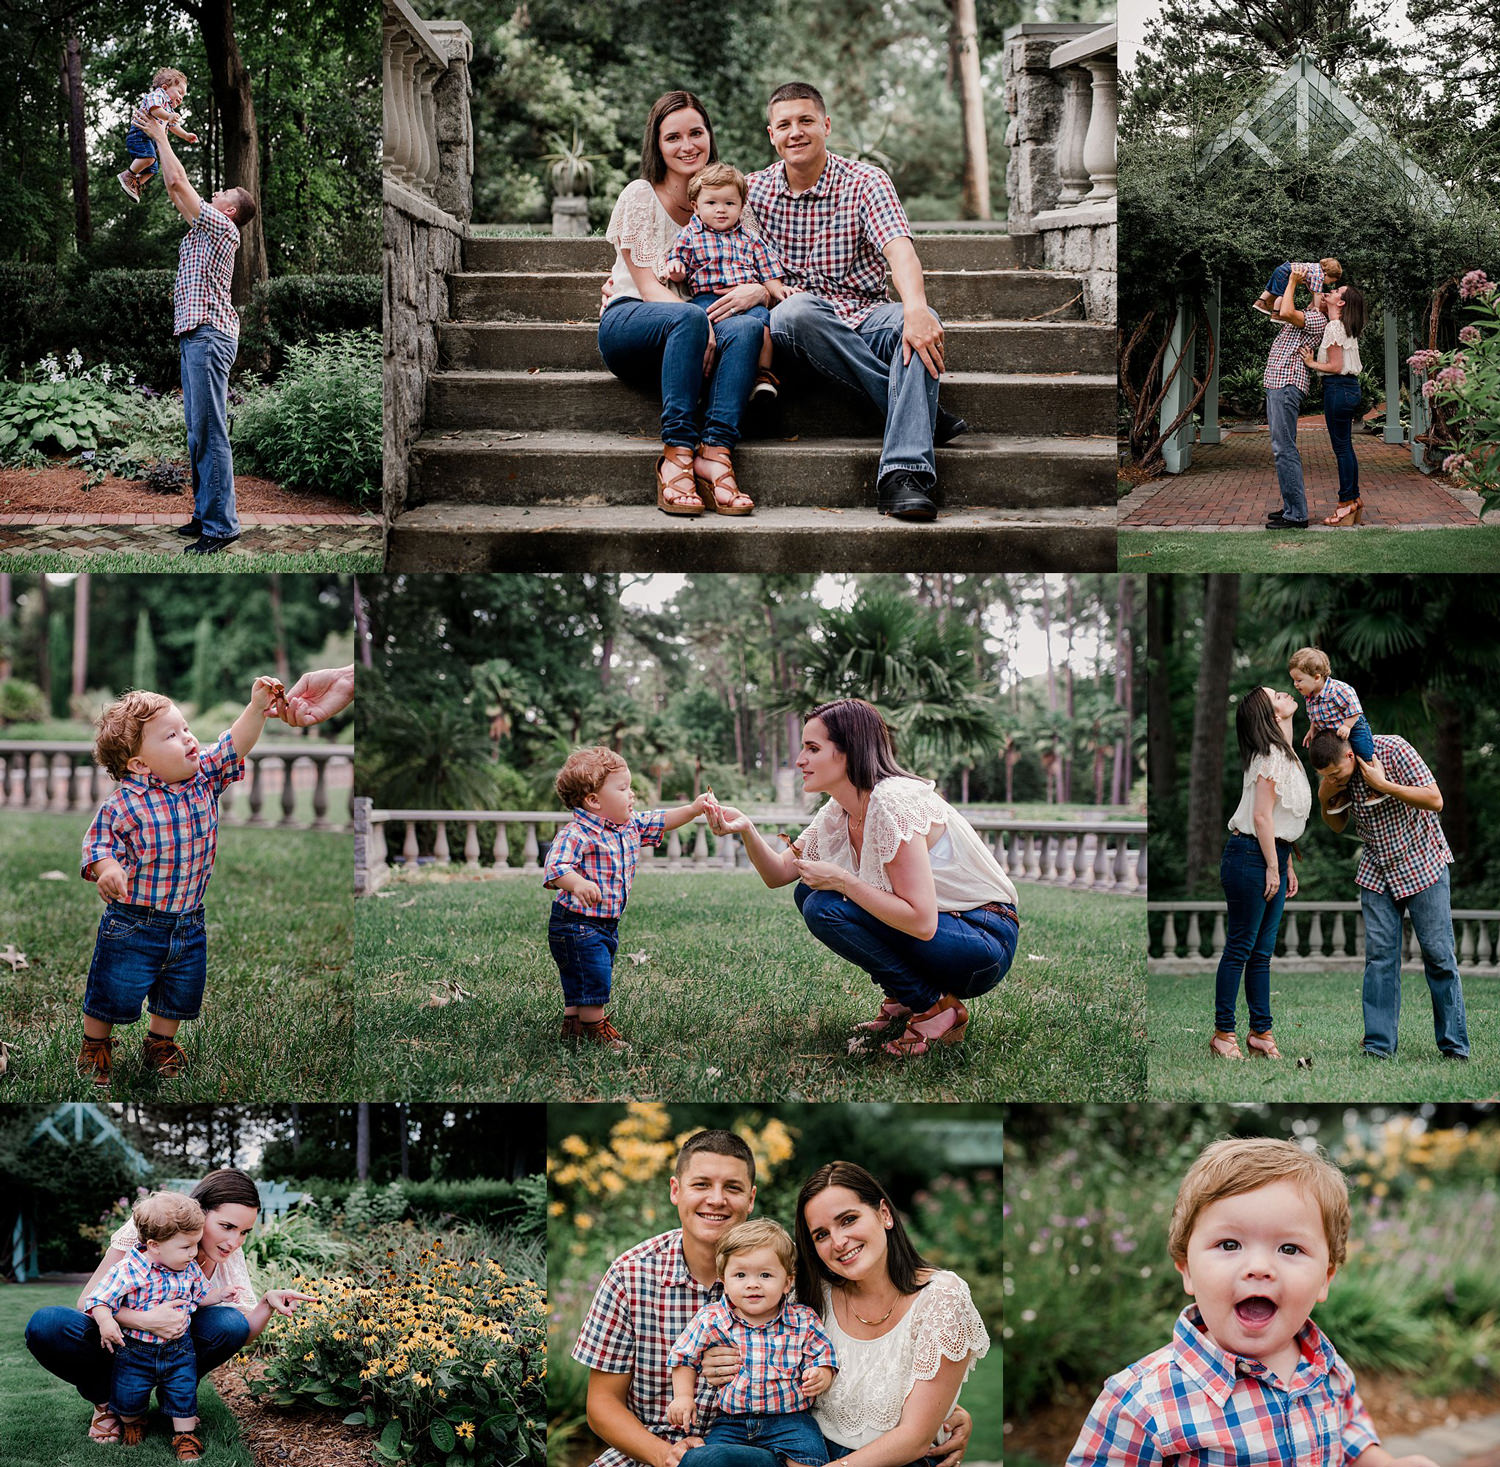 williamsburg-family-photographer-norfolk-botanical-gardens-family-session-melissa-bliss-photography.jpg